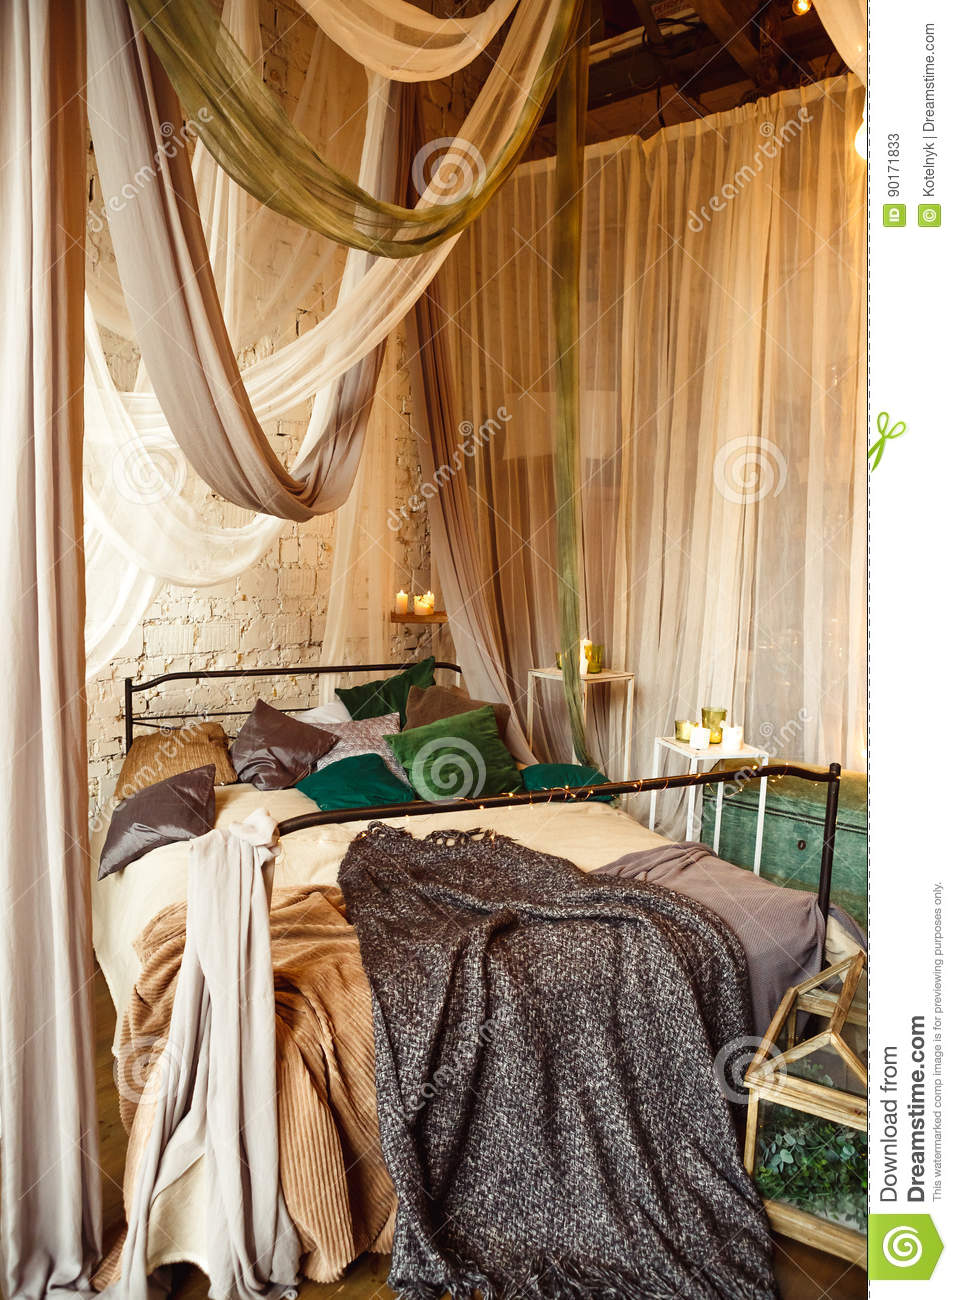 Stylish Bedroom In Boho Style With Grey, White And Green Colors And Many  Candles. Bed With Dark Grey Blanket.